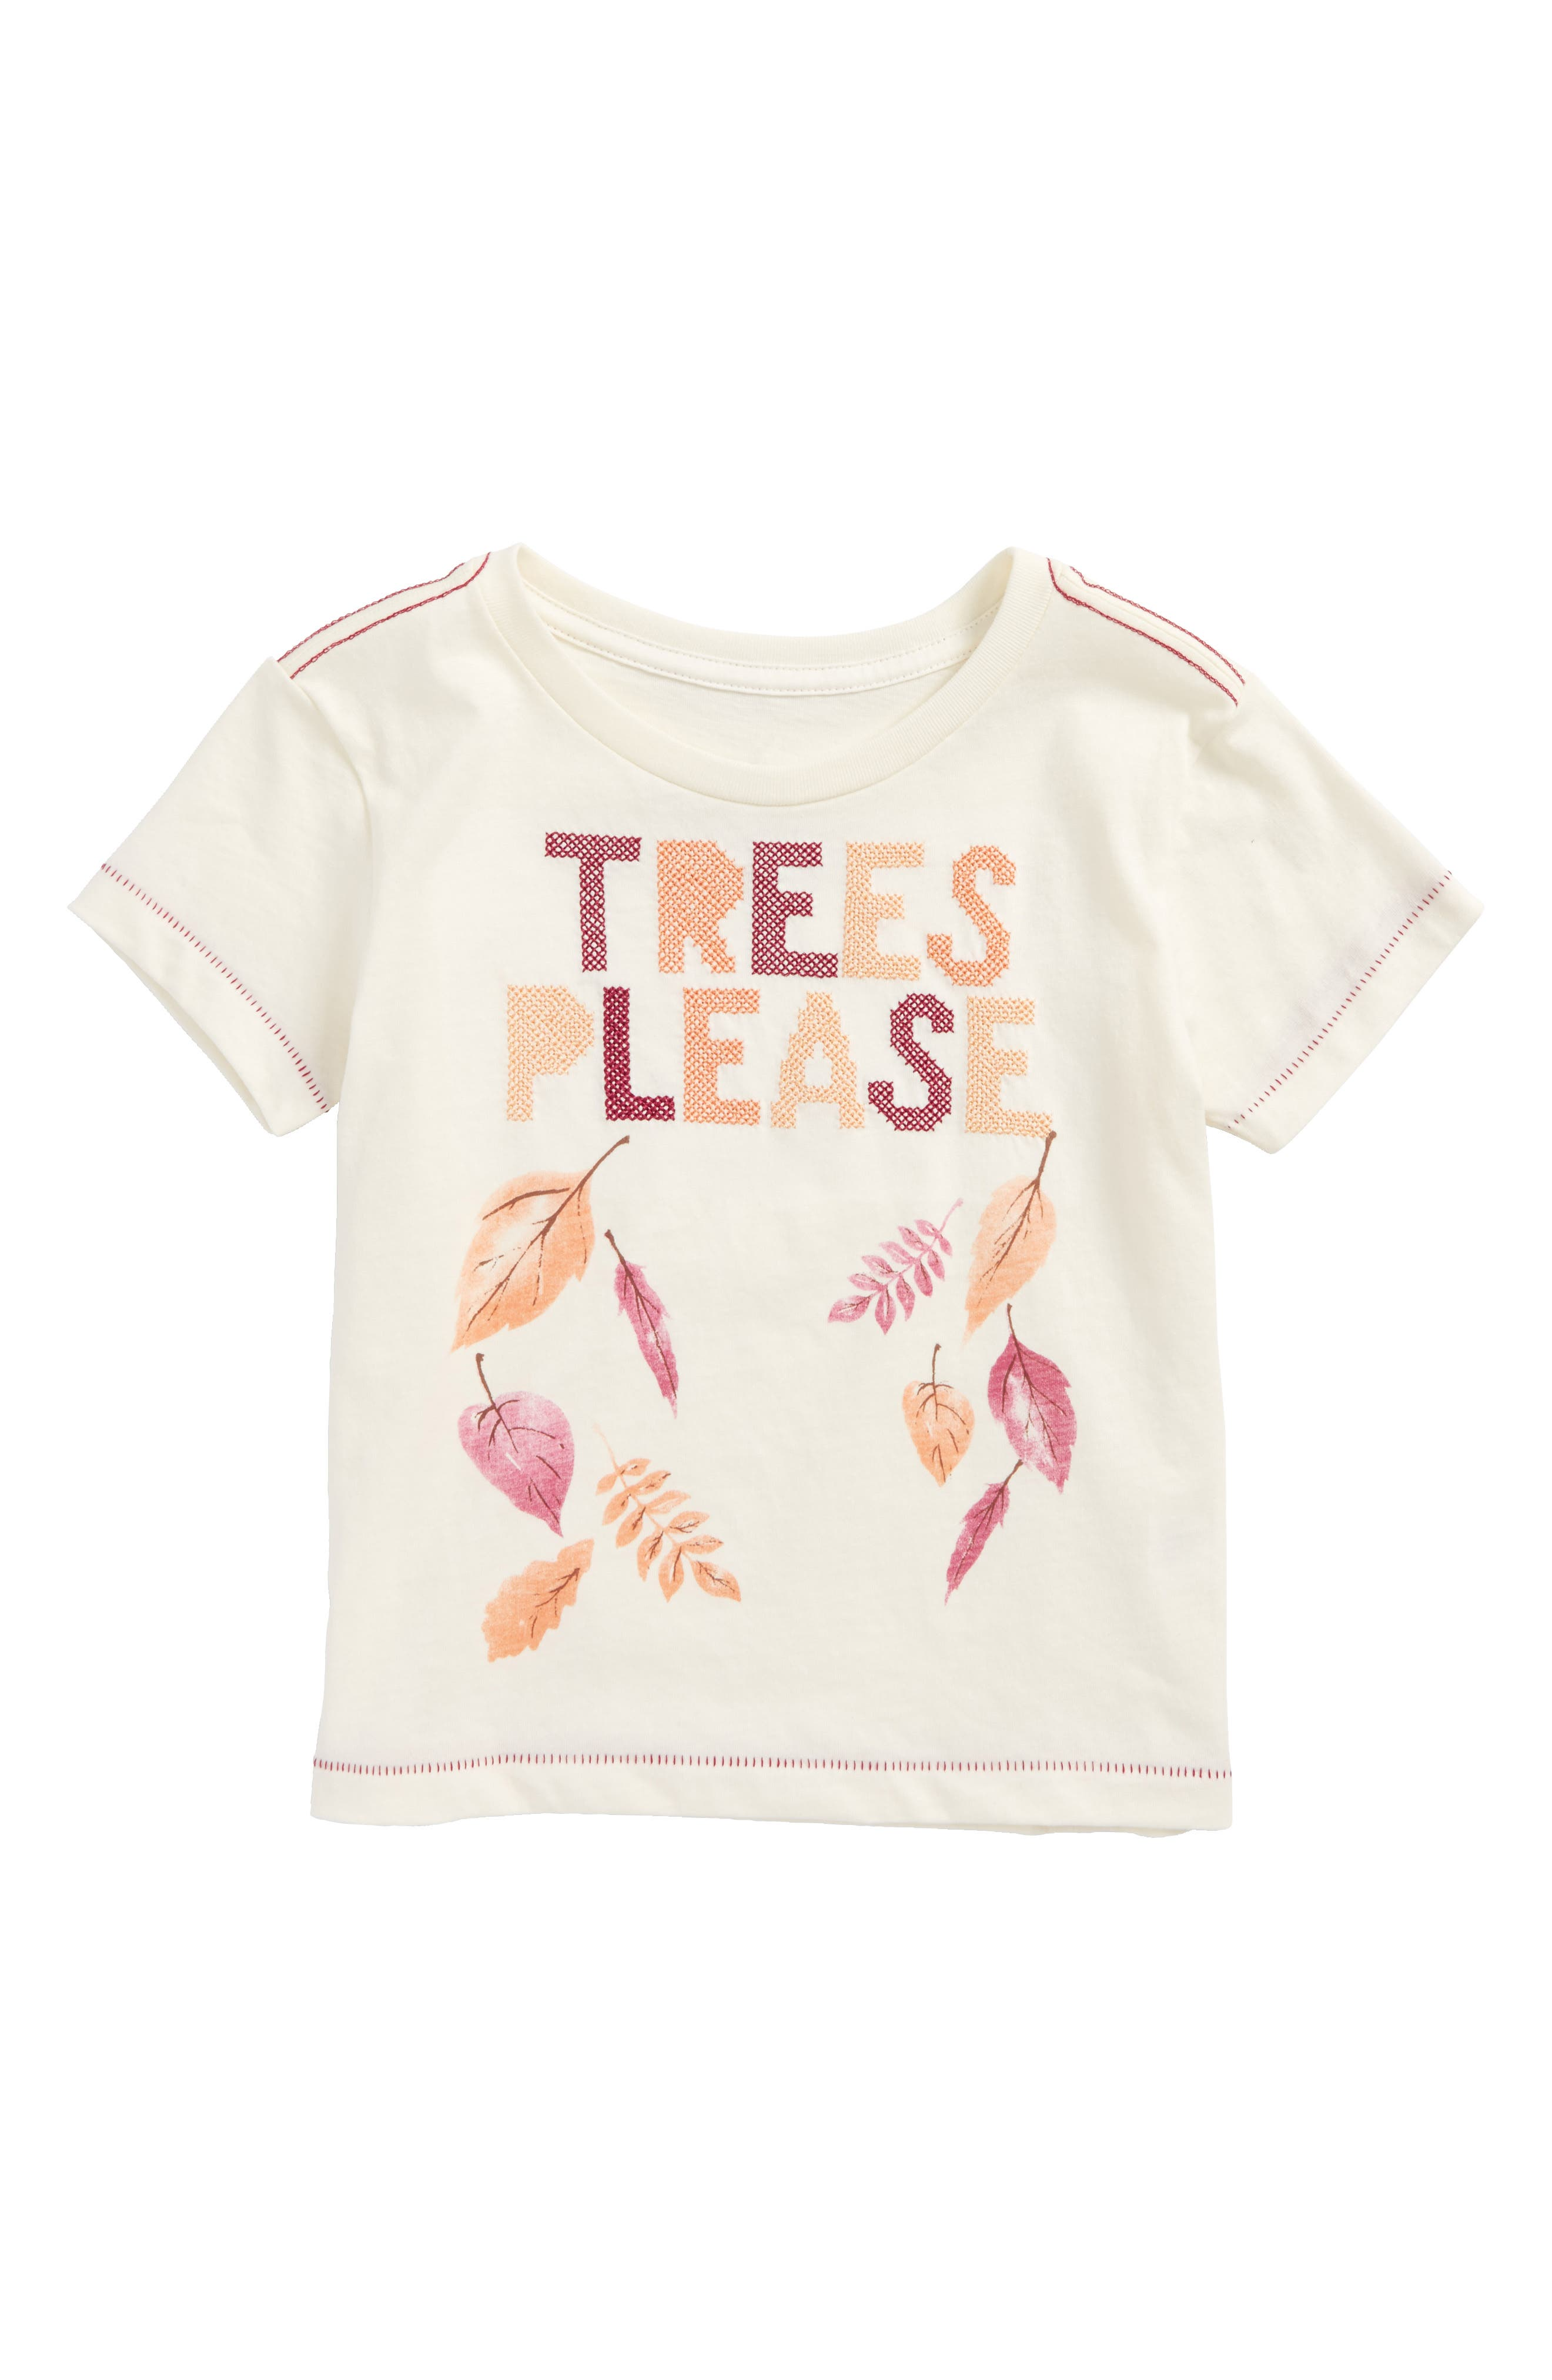 Trees Please Embroidered Graphic Tee,                         Main,                         color, 906